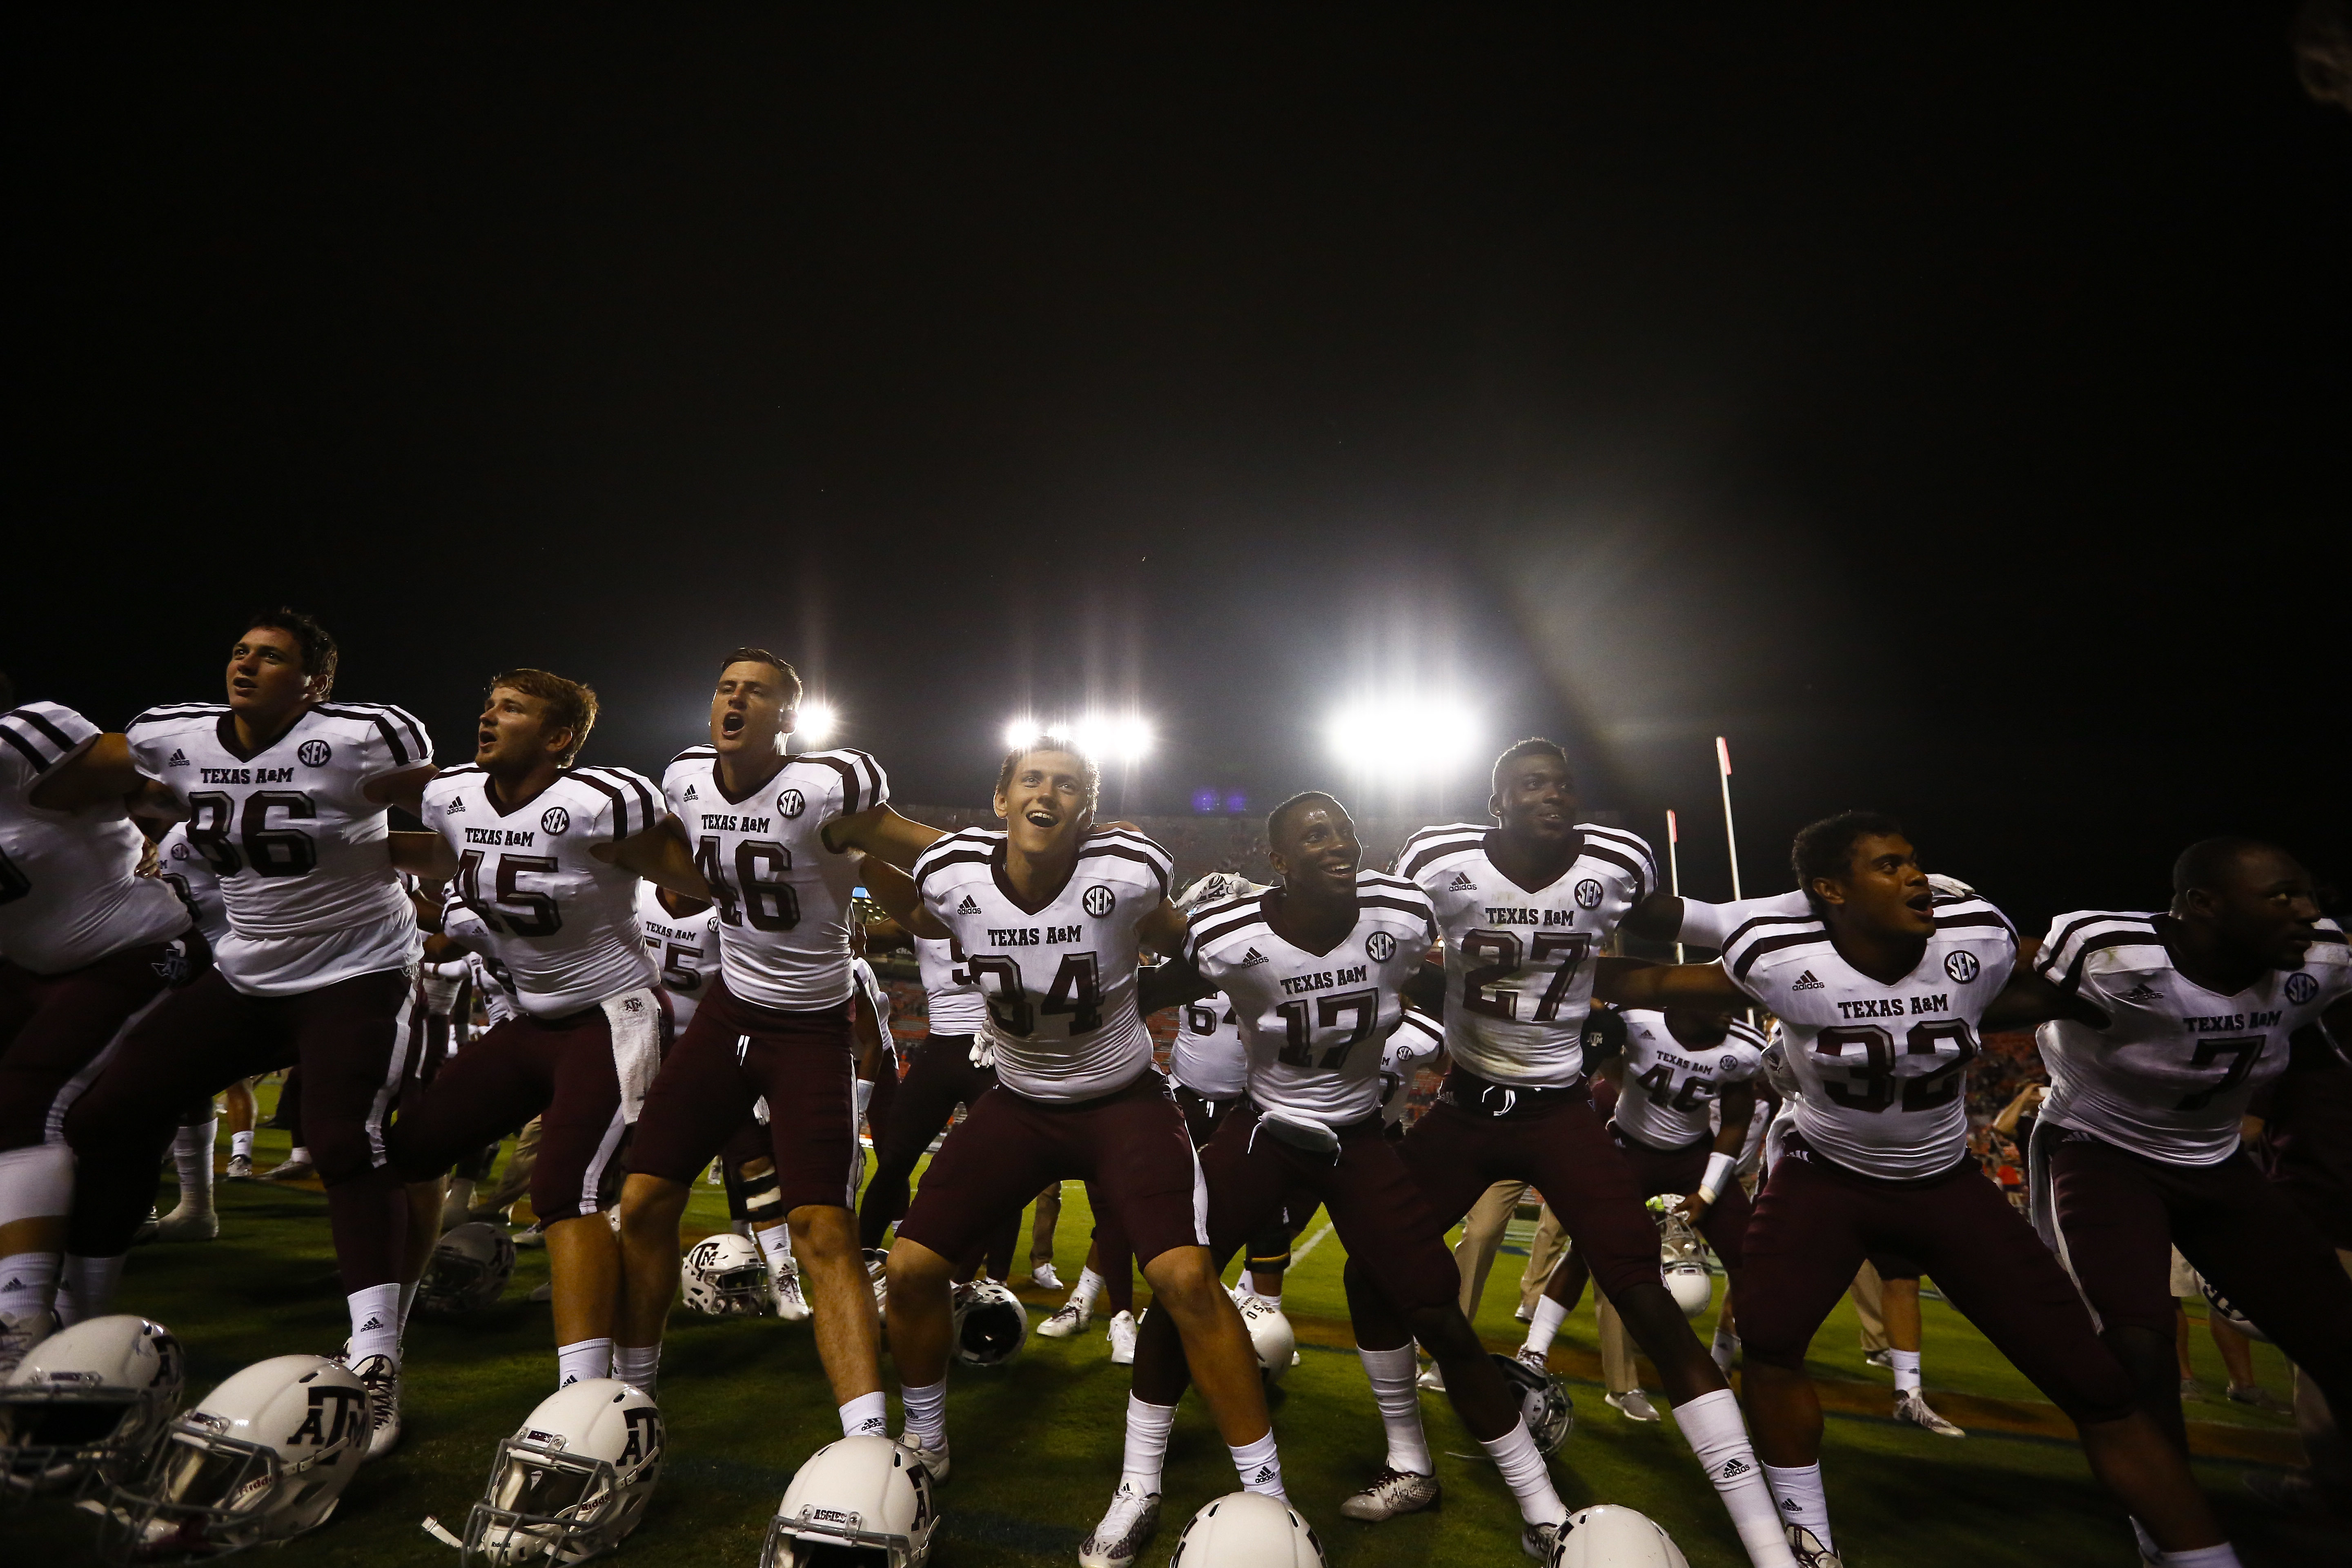 Texas A&M players sing and celebrate after defeating Auburn in an NCAA college football game, Saturday, Sept. 17, 2016, in Auburn, Ala. (AP Photo/Brynn Anderson)